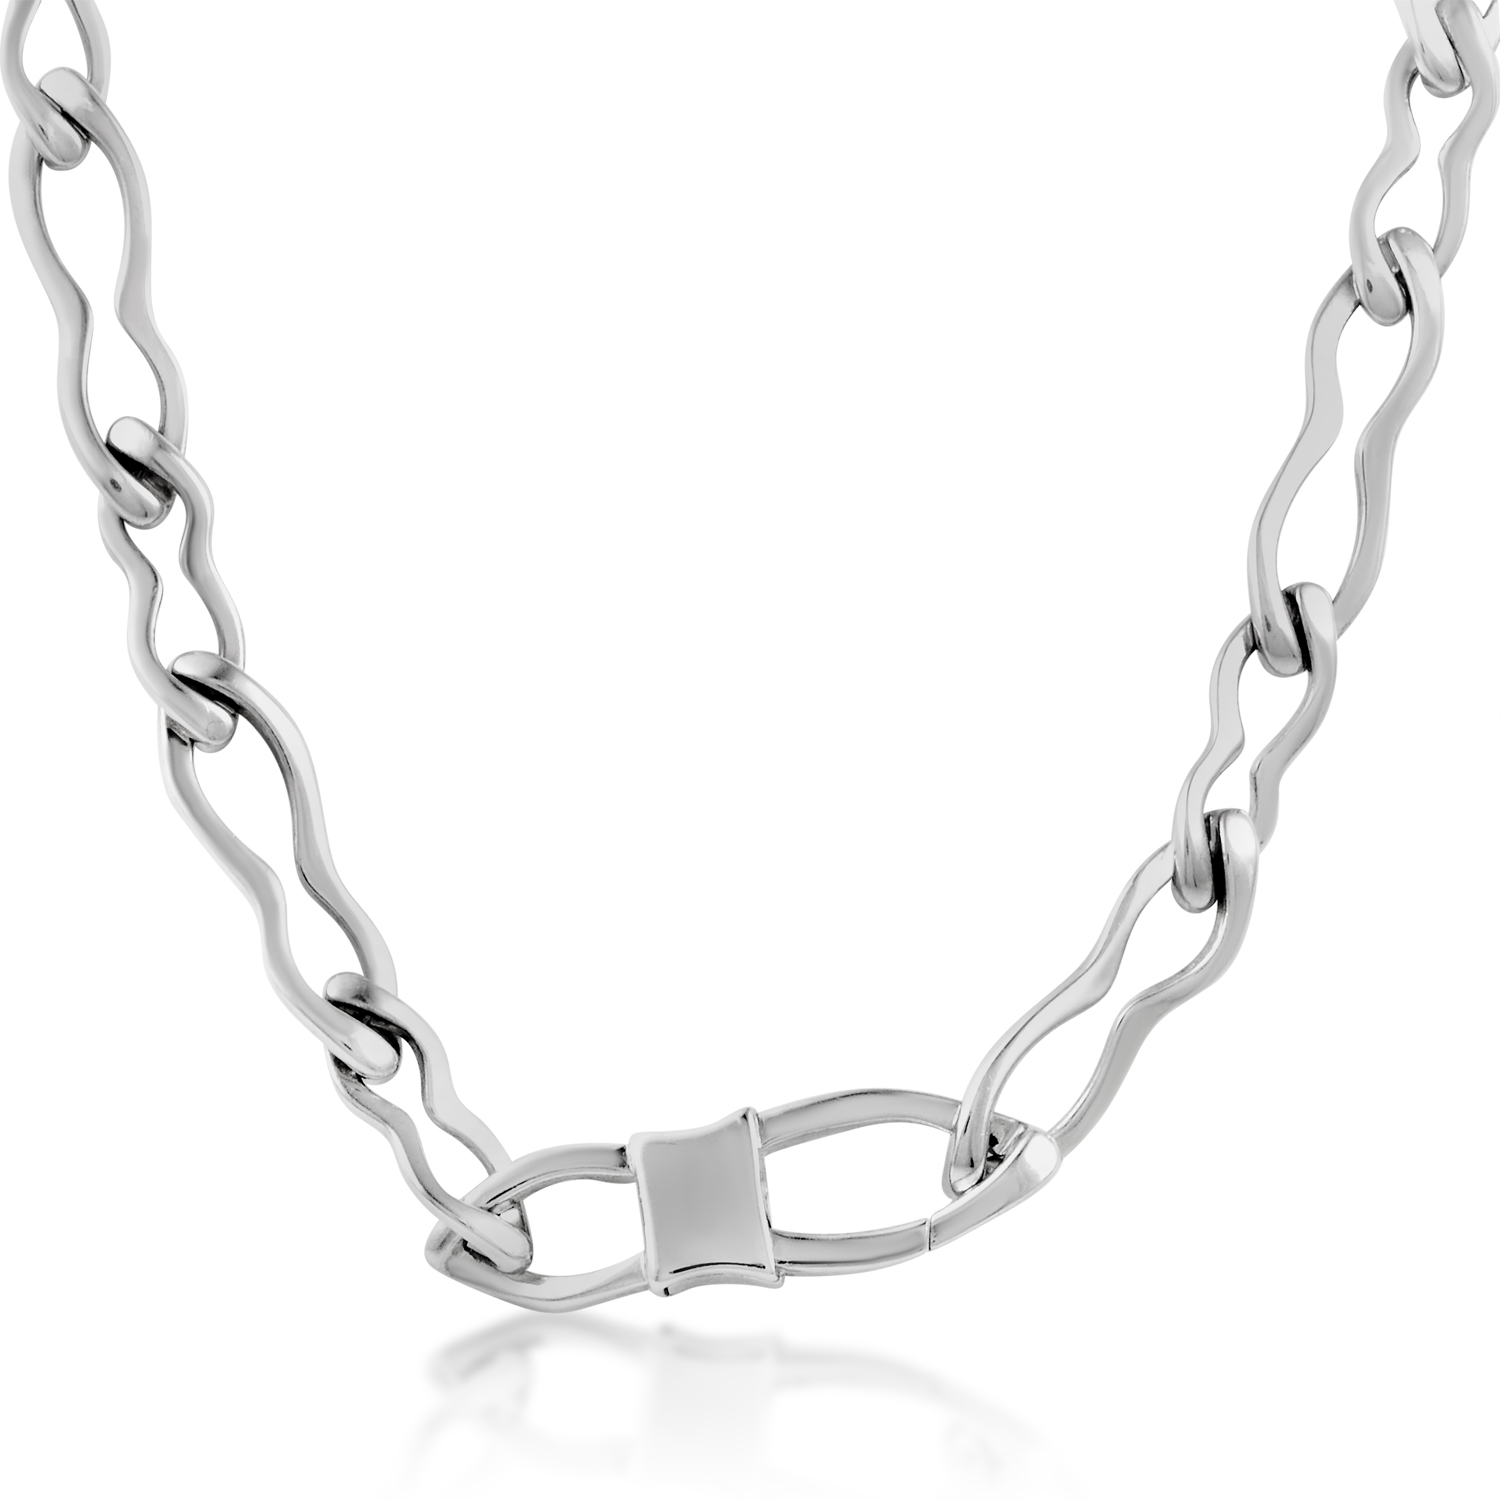 Men's Sterling Silver Chain Link Necklace 6108010984